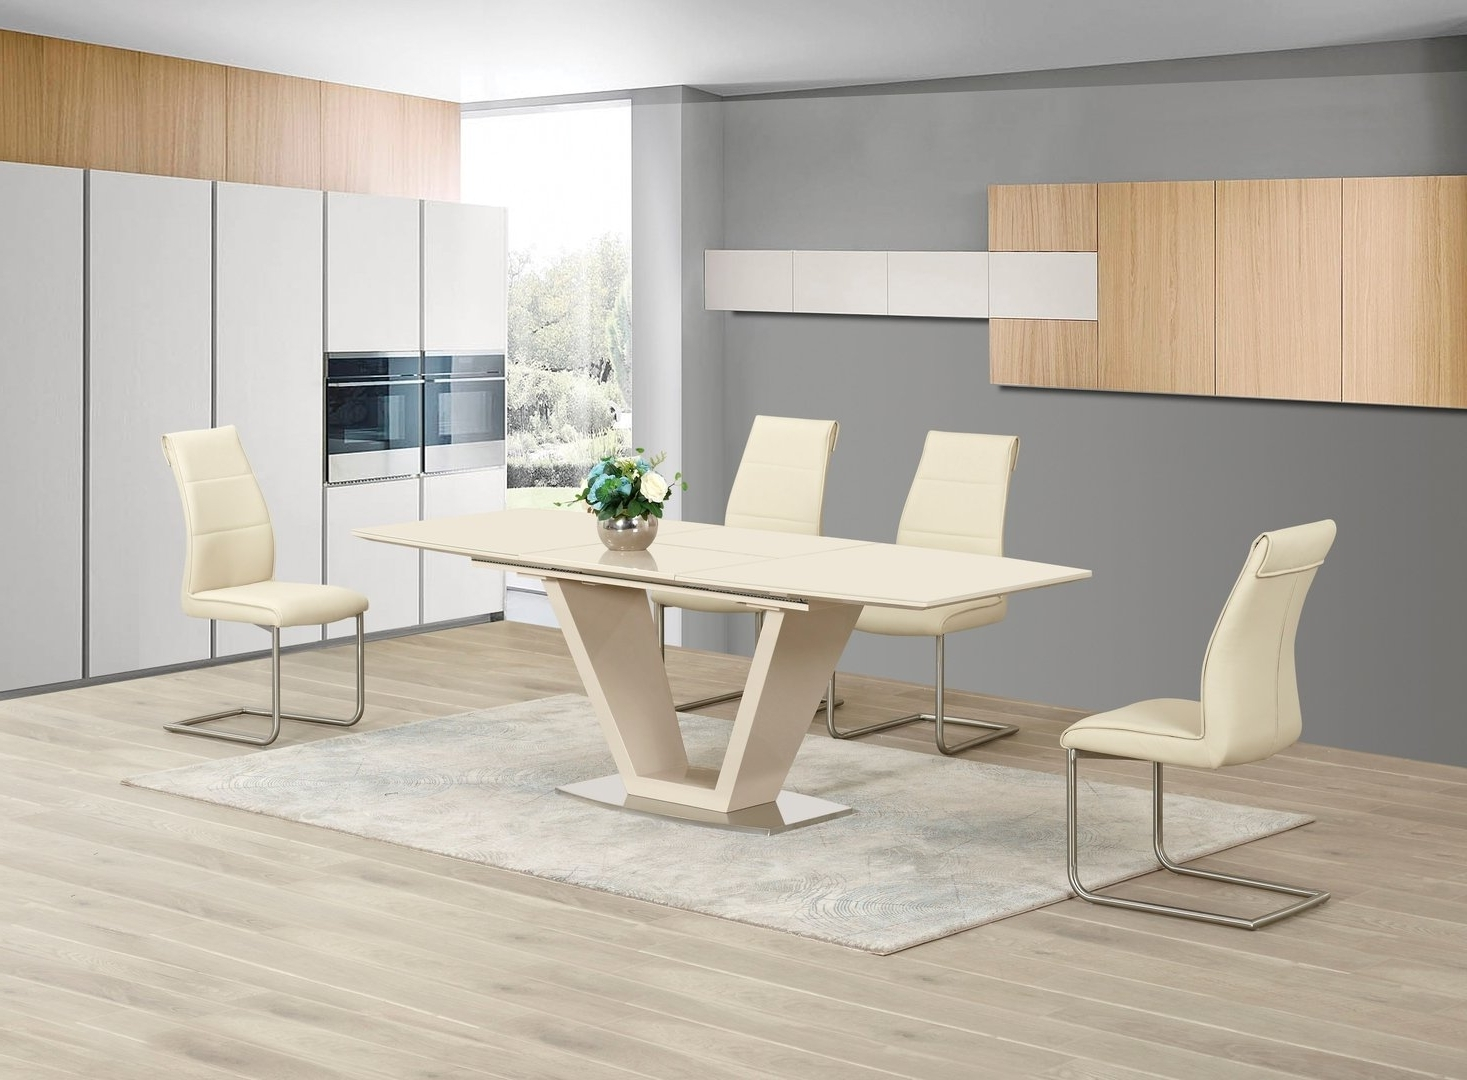 Widely Used Extending Cream Glass High Gloss Dining Table And 8 Cream Chairs With Extending Dining Tables Set (View 24 of 25)